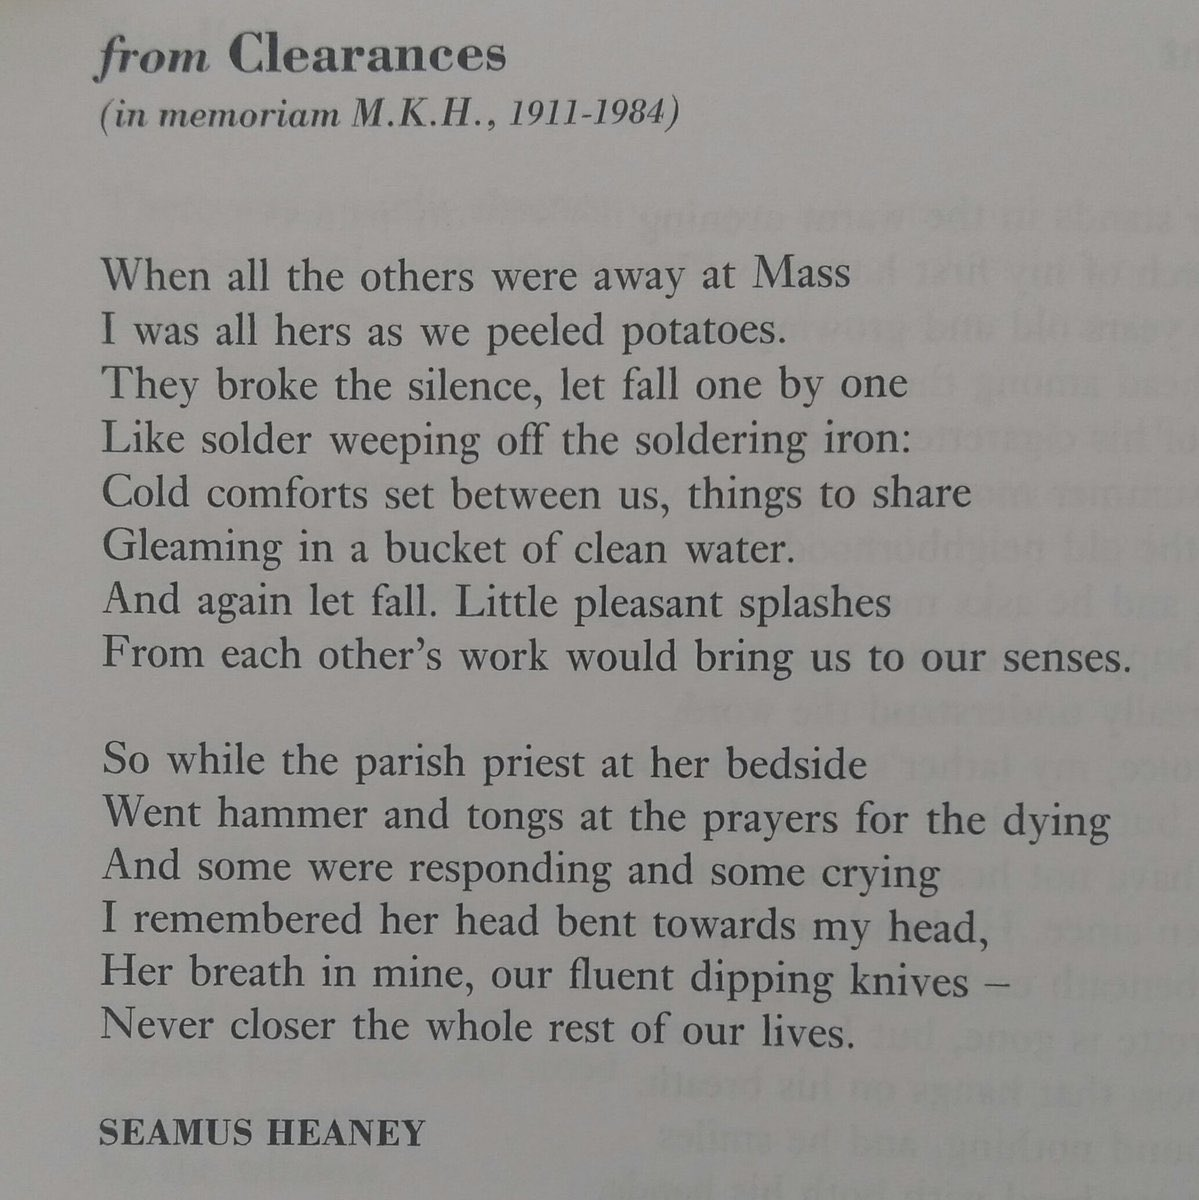 seamus heaney when all the others were away at mass